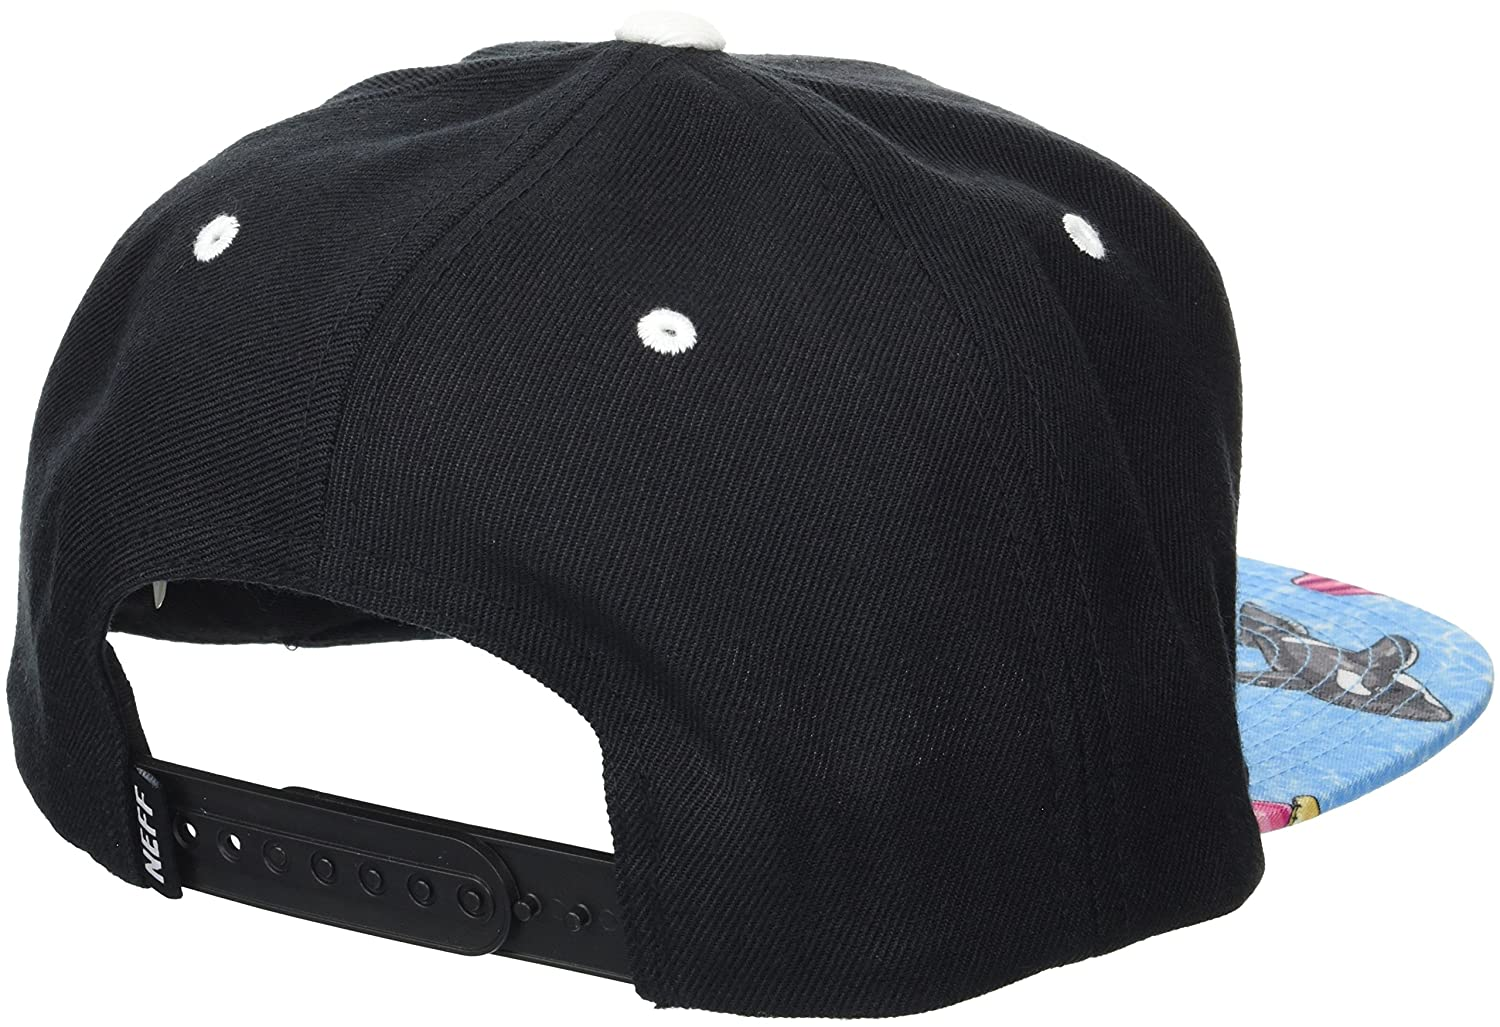 164039e15f8e Neff Men's Daily Smile Pattern Snapback Hats-Custom Adjustable, Black/Pool  Party, One Size: Amazon.ca: Clothing & Accessories